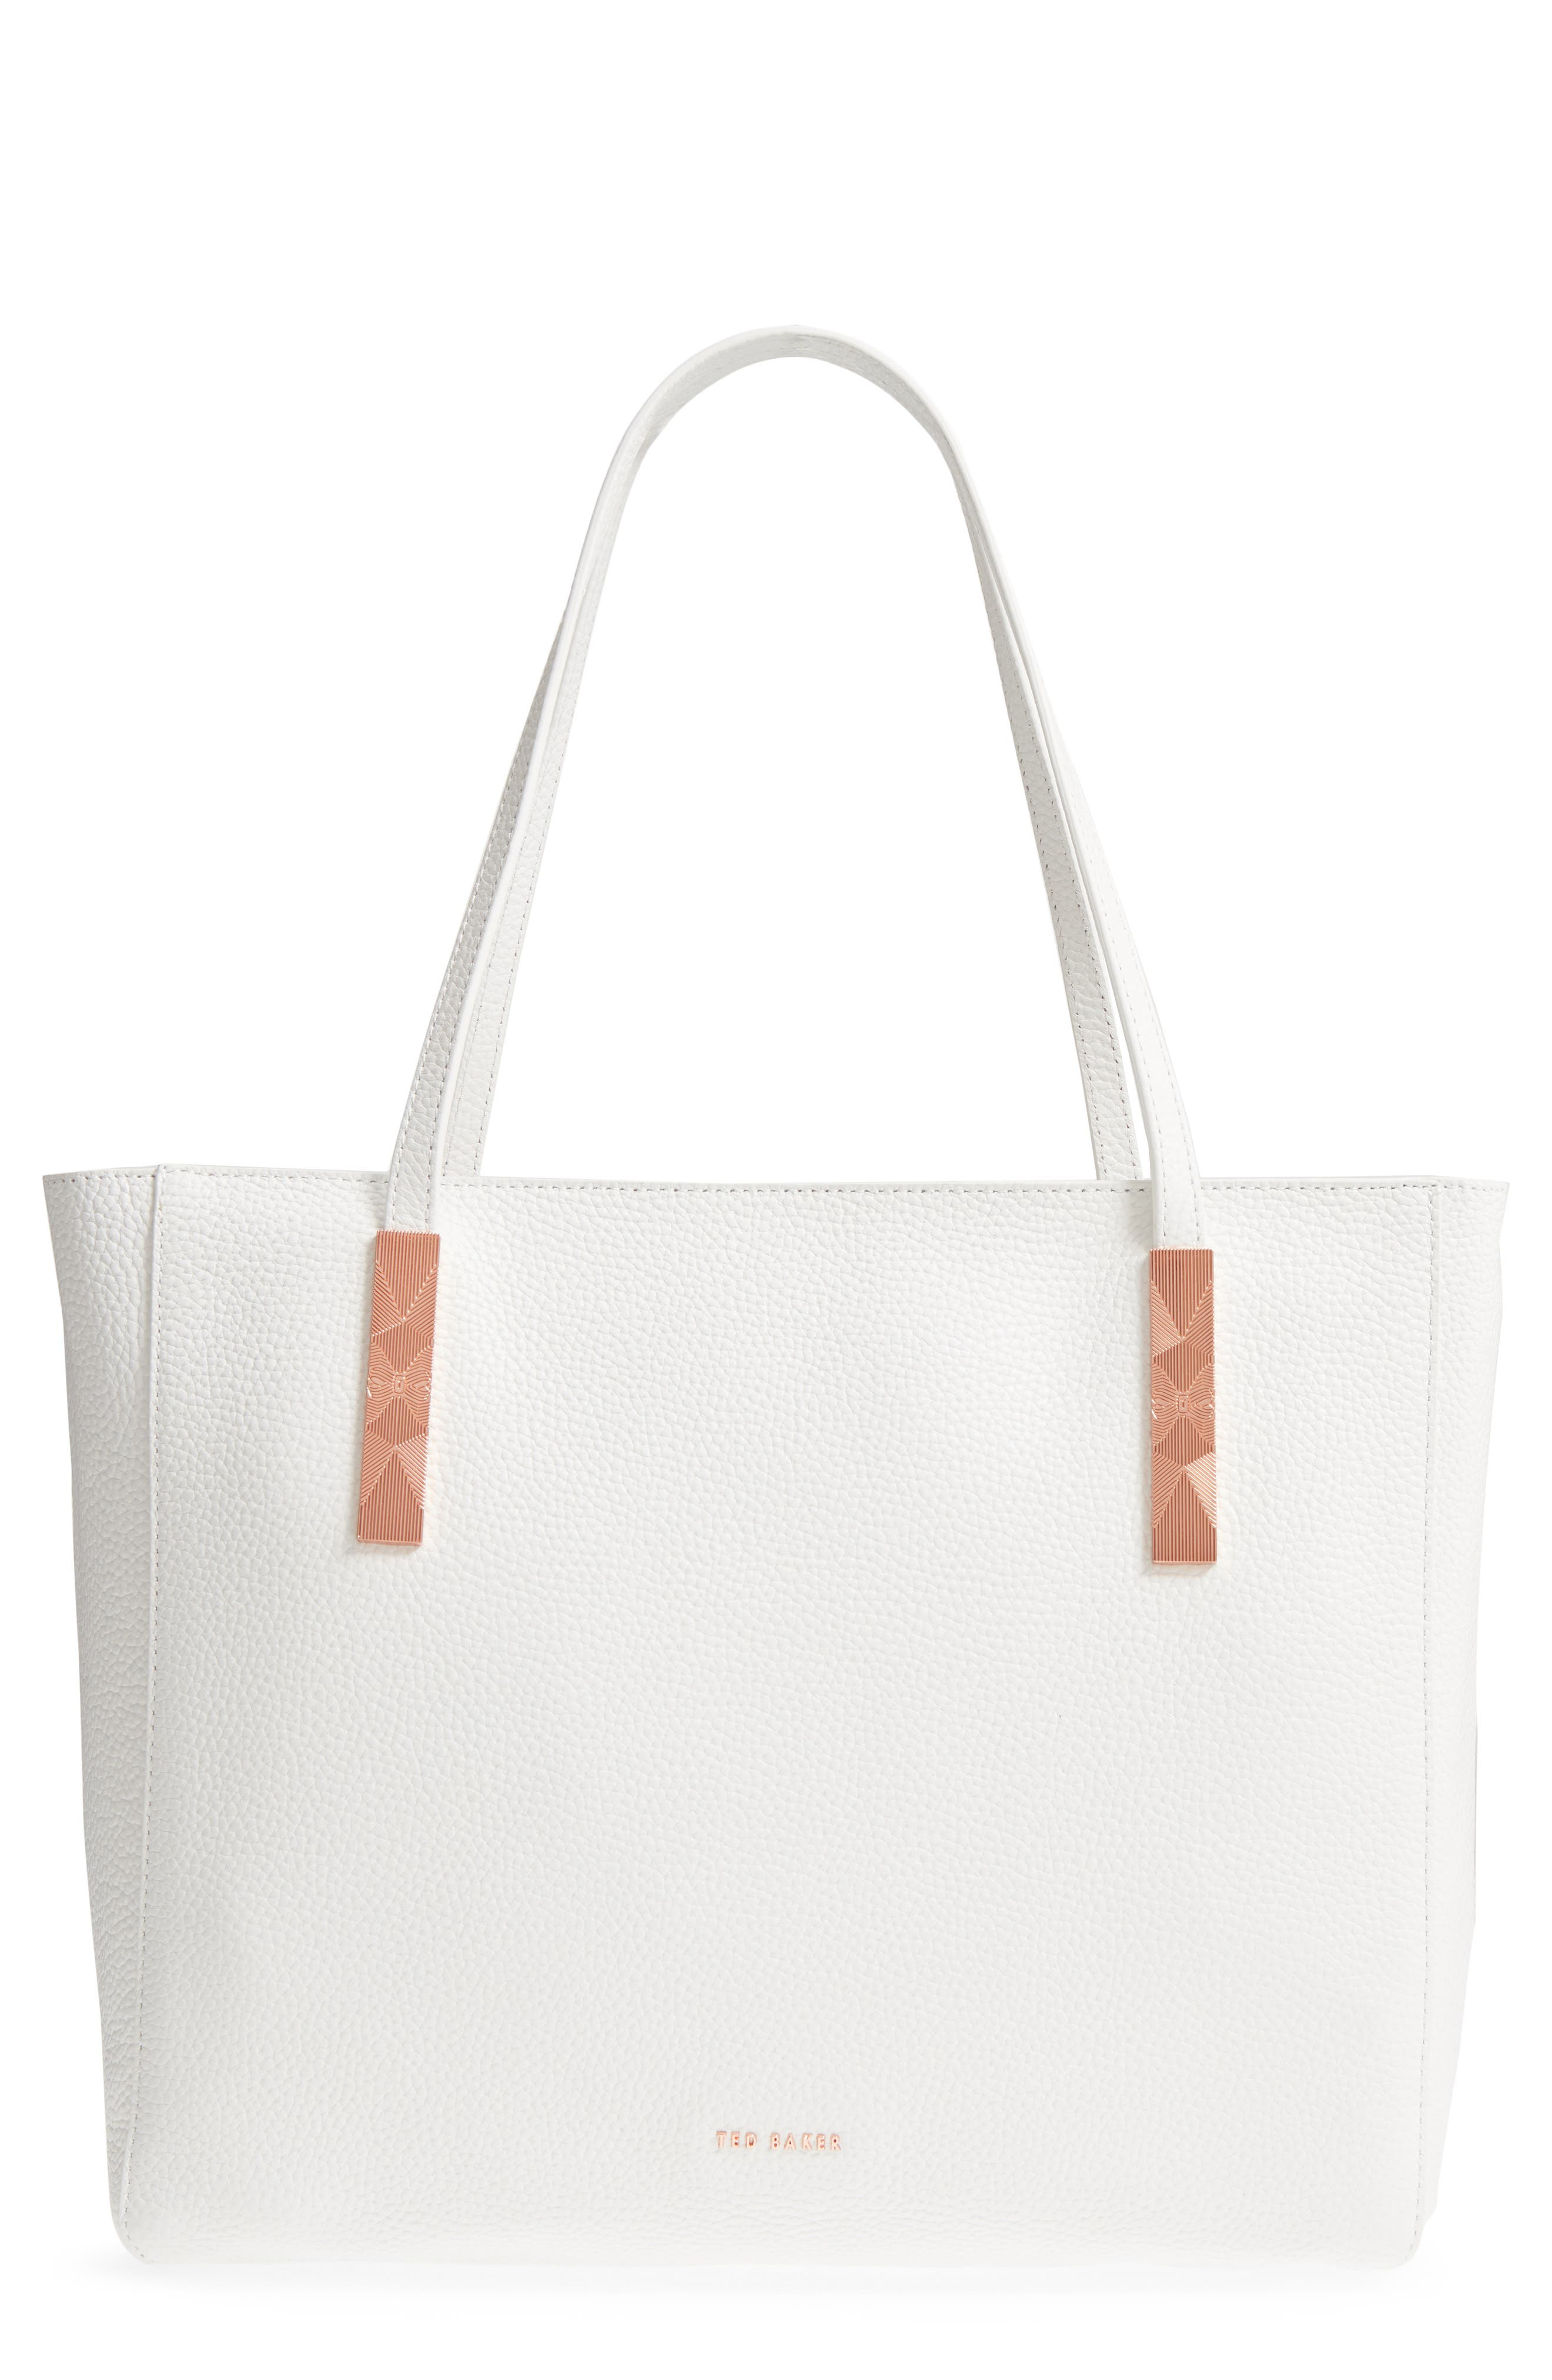 Pebbled Leather Tote,                             Main thumbnail 1, color,                             White